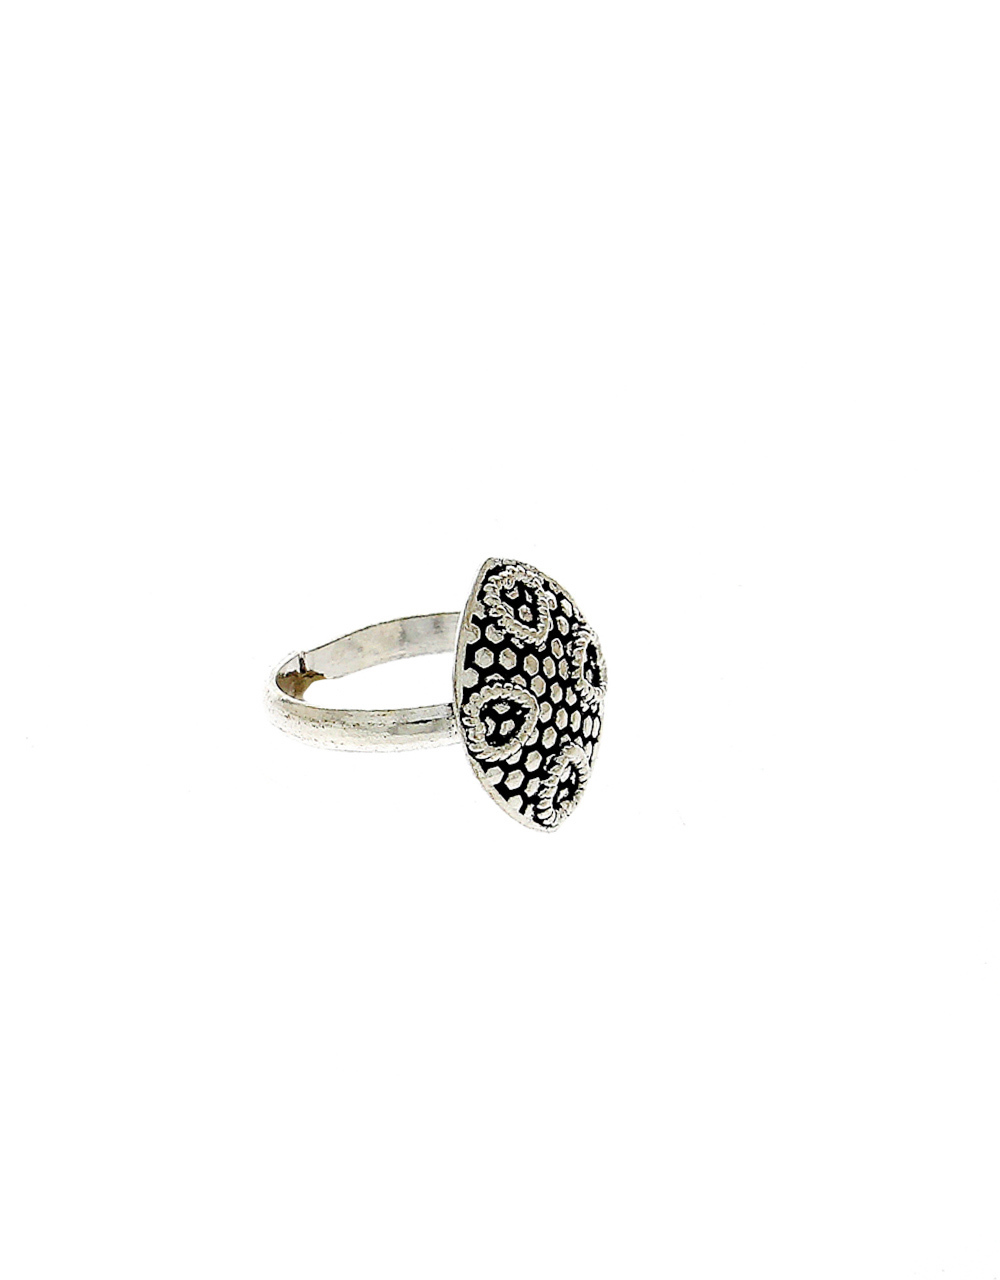 Oxidised Finish Silver Toe Ring For Girls Fancy